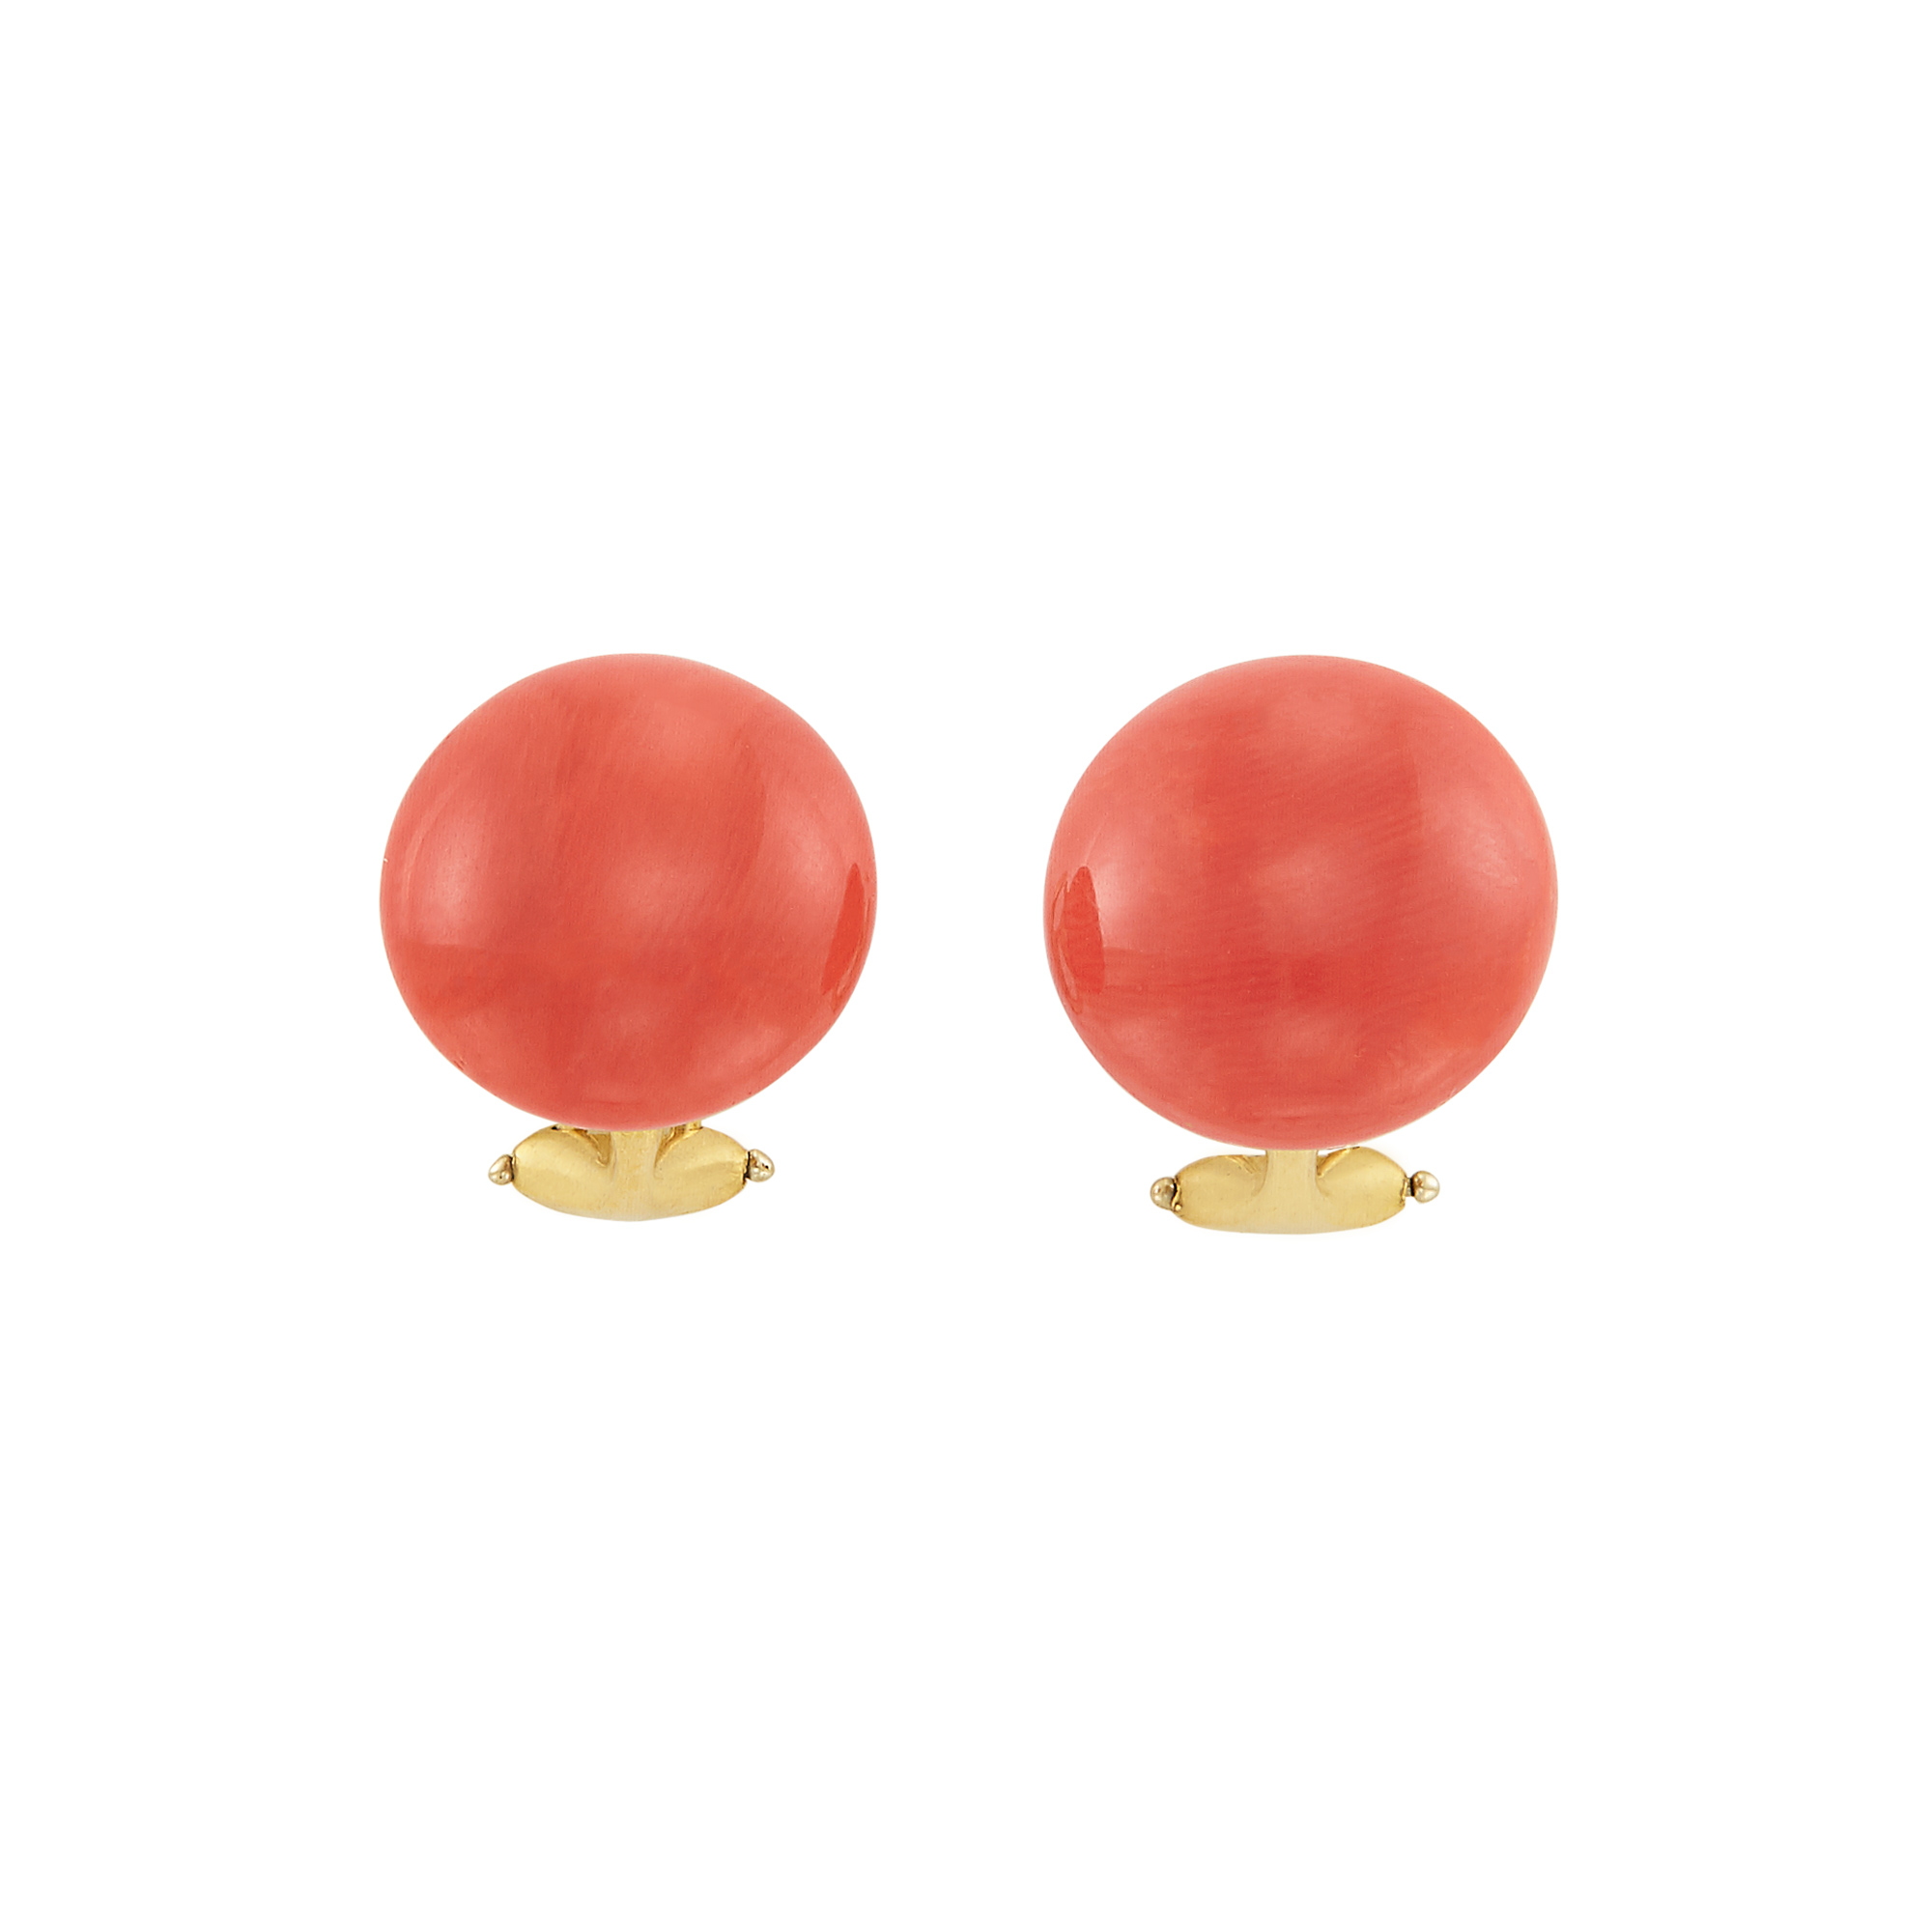 Lot image - Pair of Gold and Coral Earrings, Linda Lee Johnson